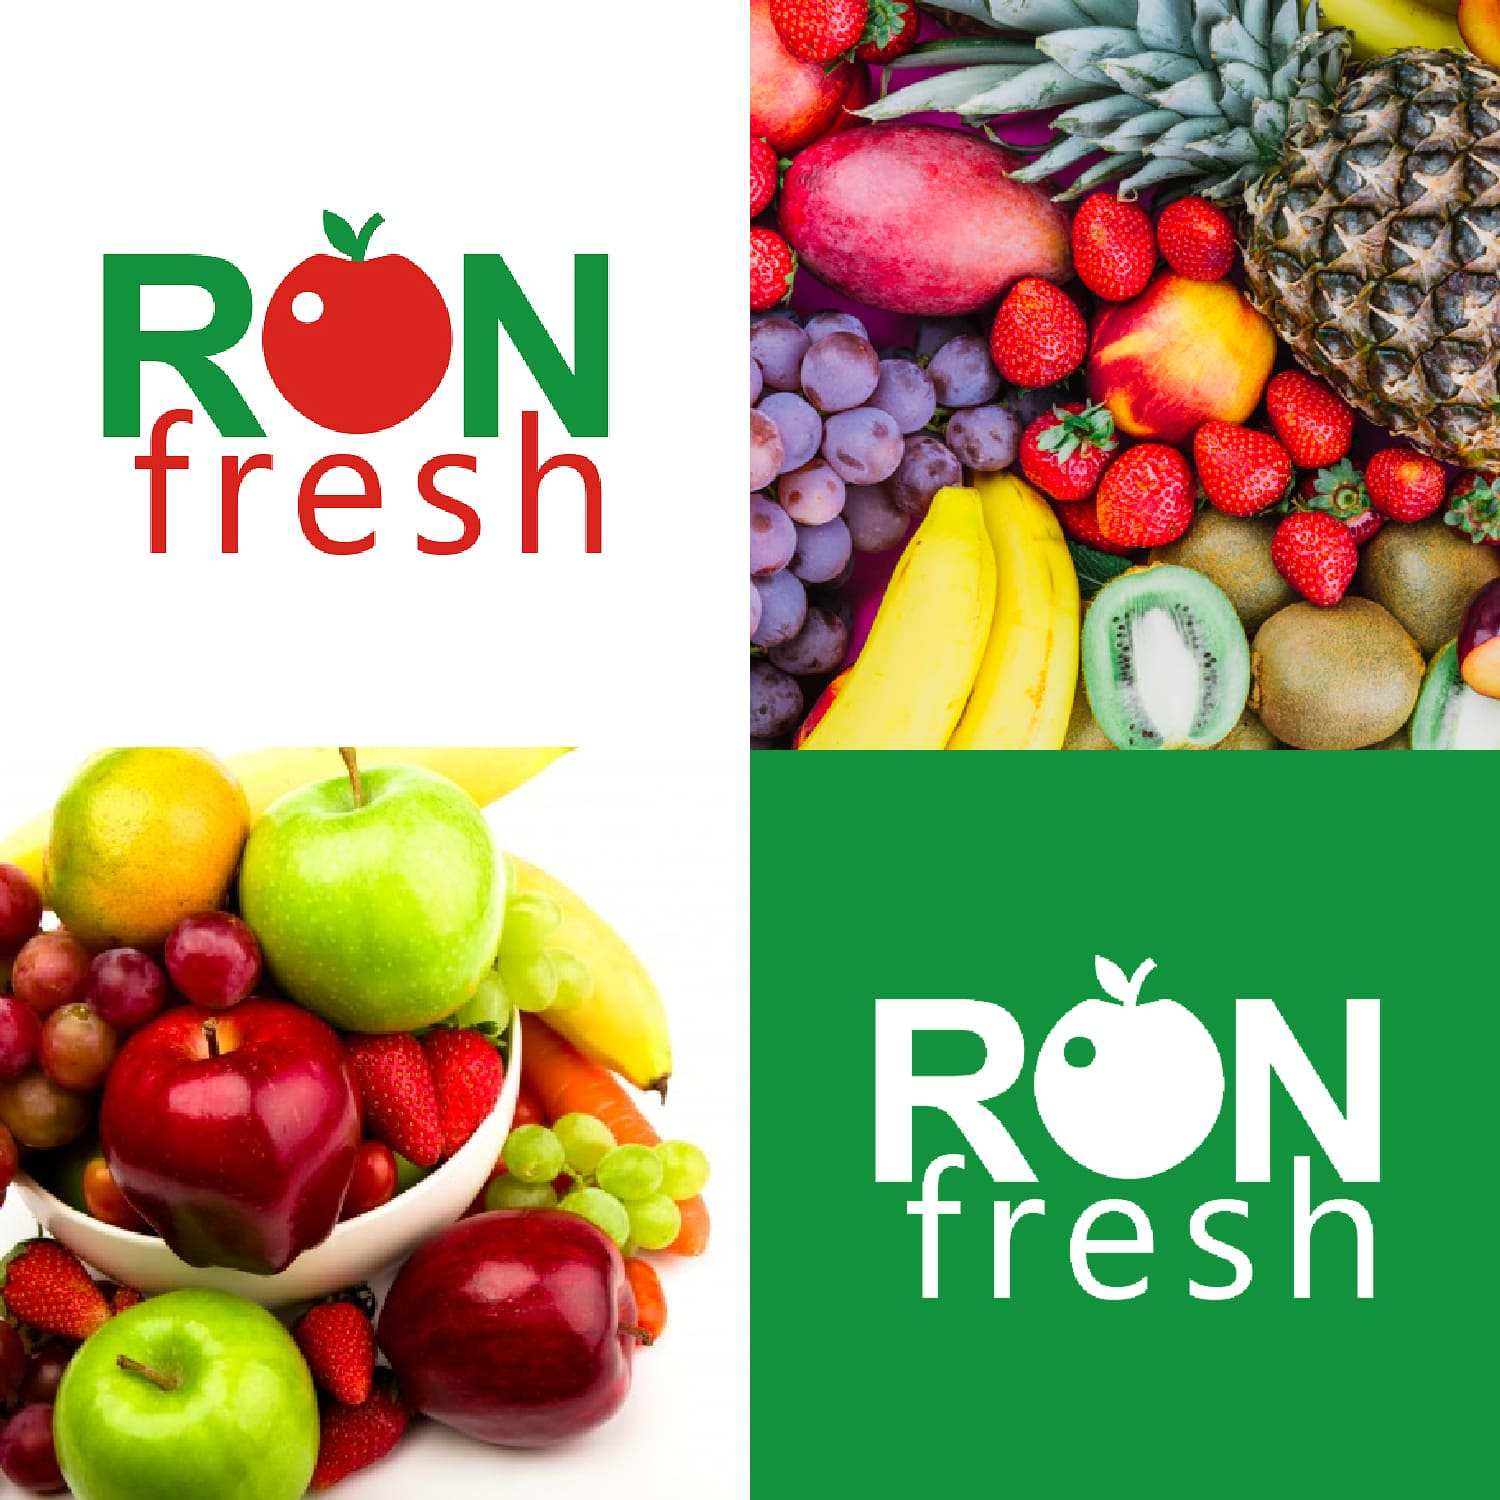 Logodesign Ronfresh in Ratingen